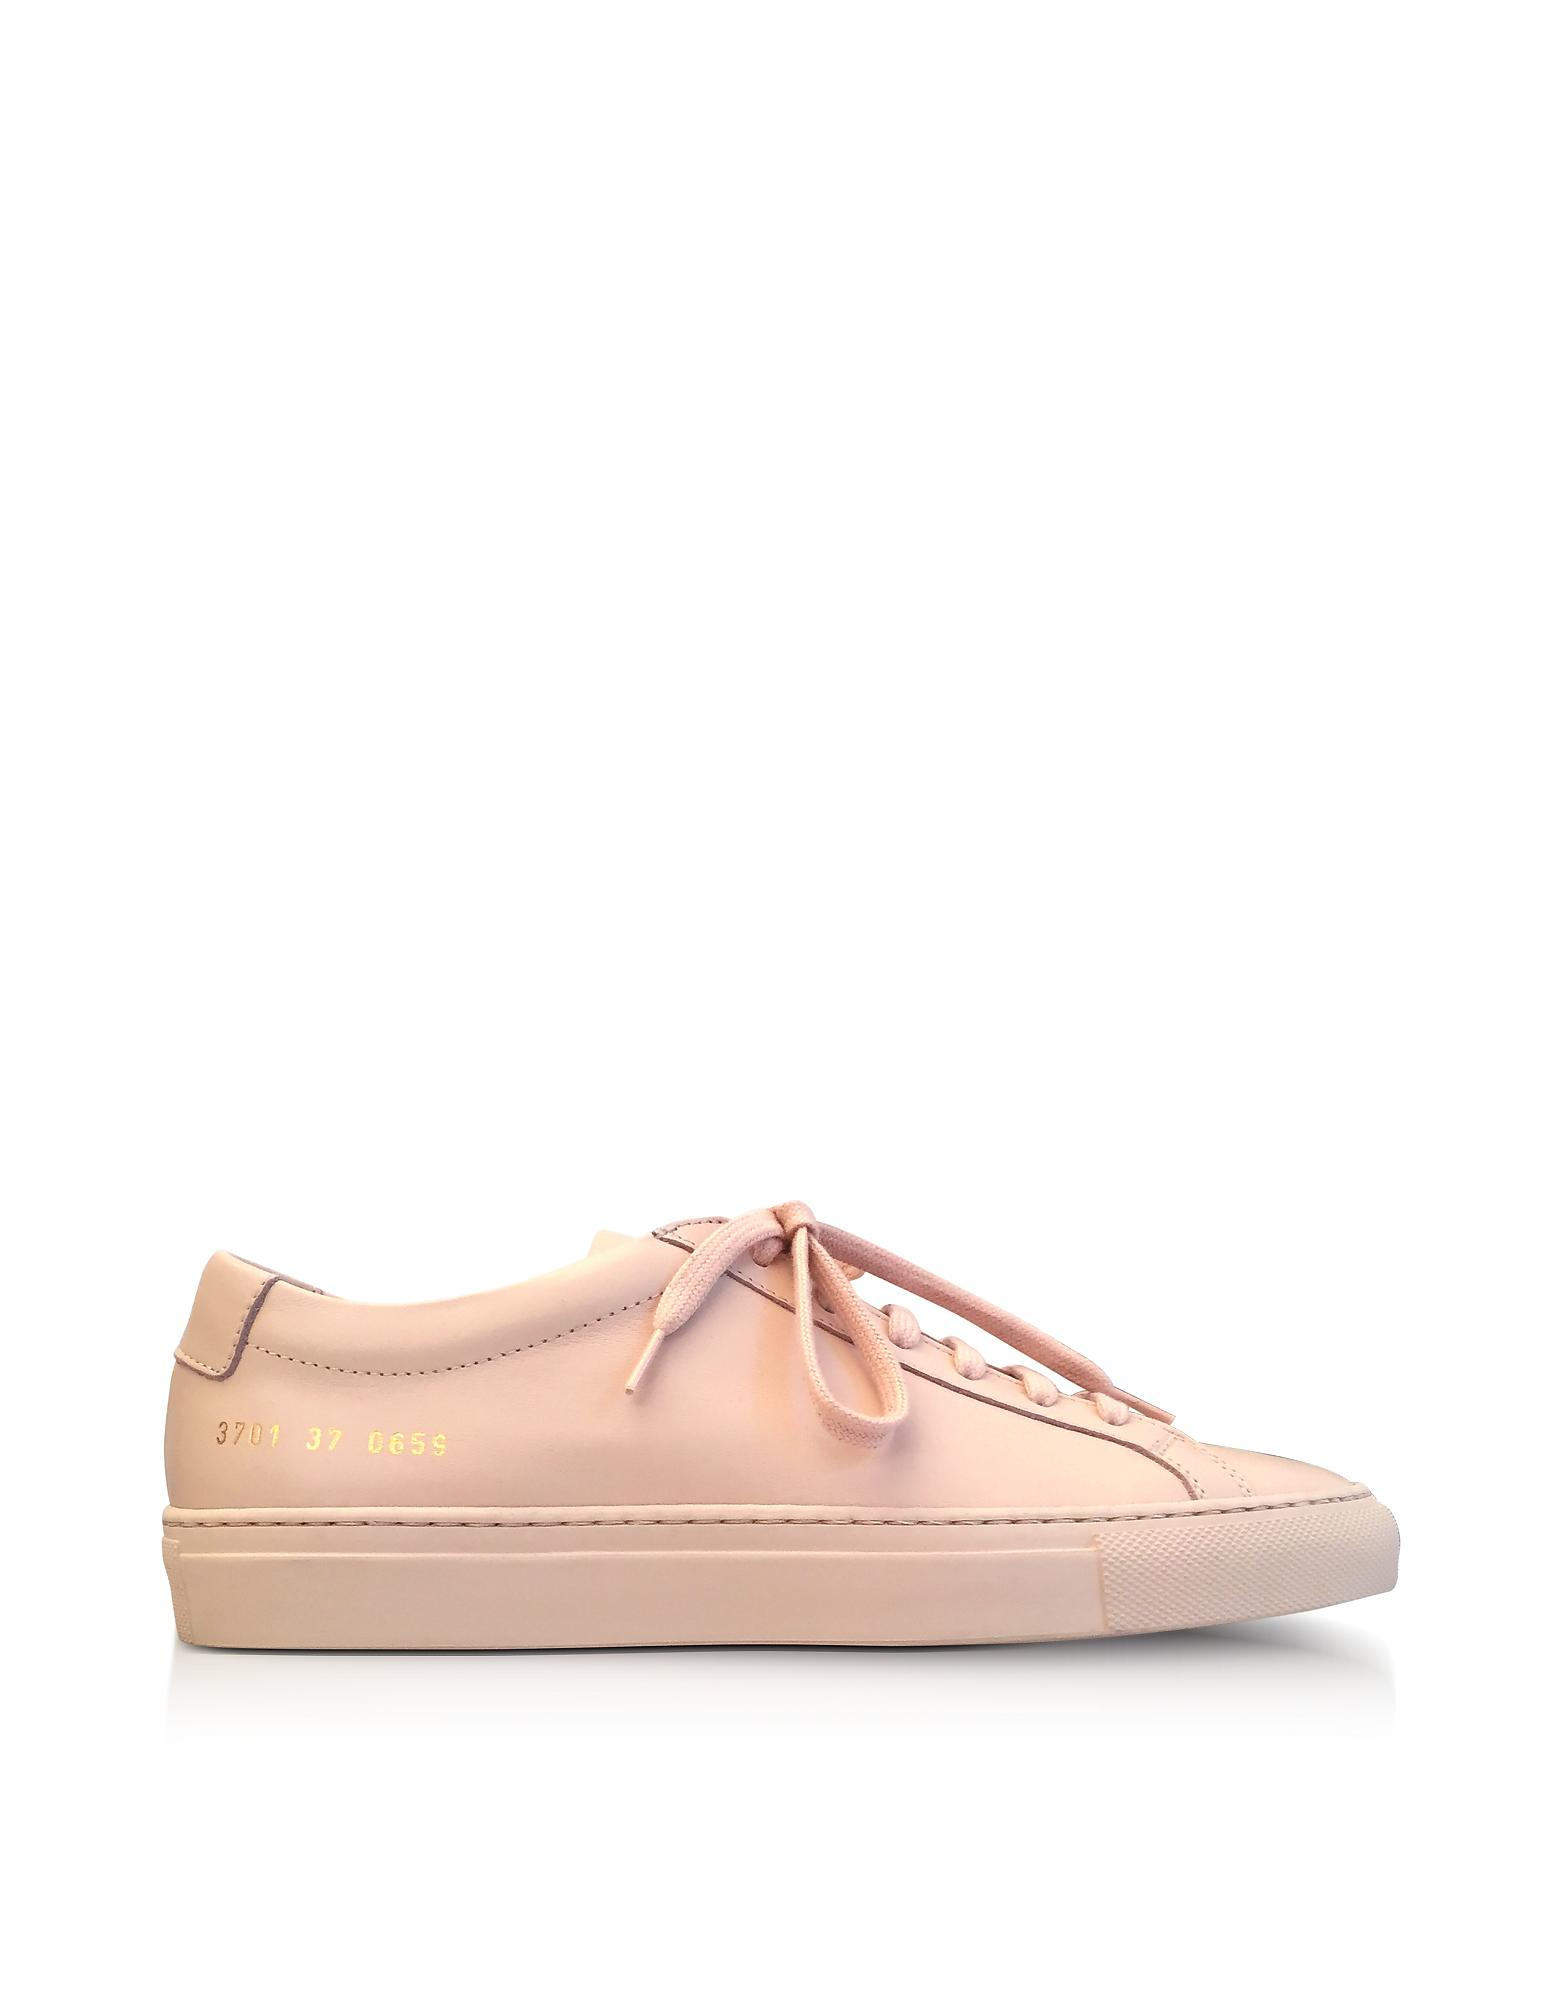 3065a0ff8ded Lyst - Common Projects Nude Leather Achilles Original Low Top ...